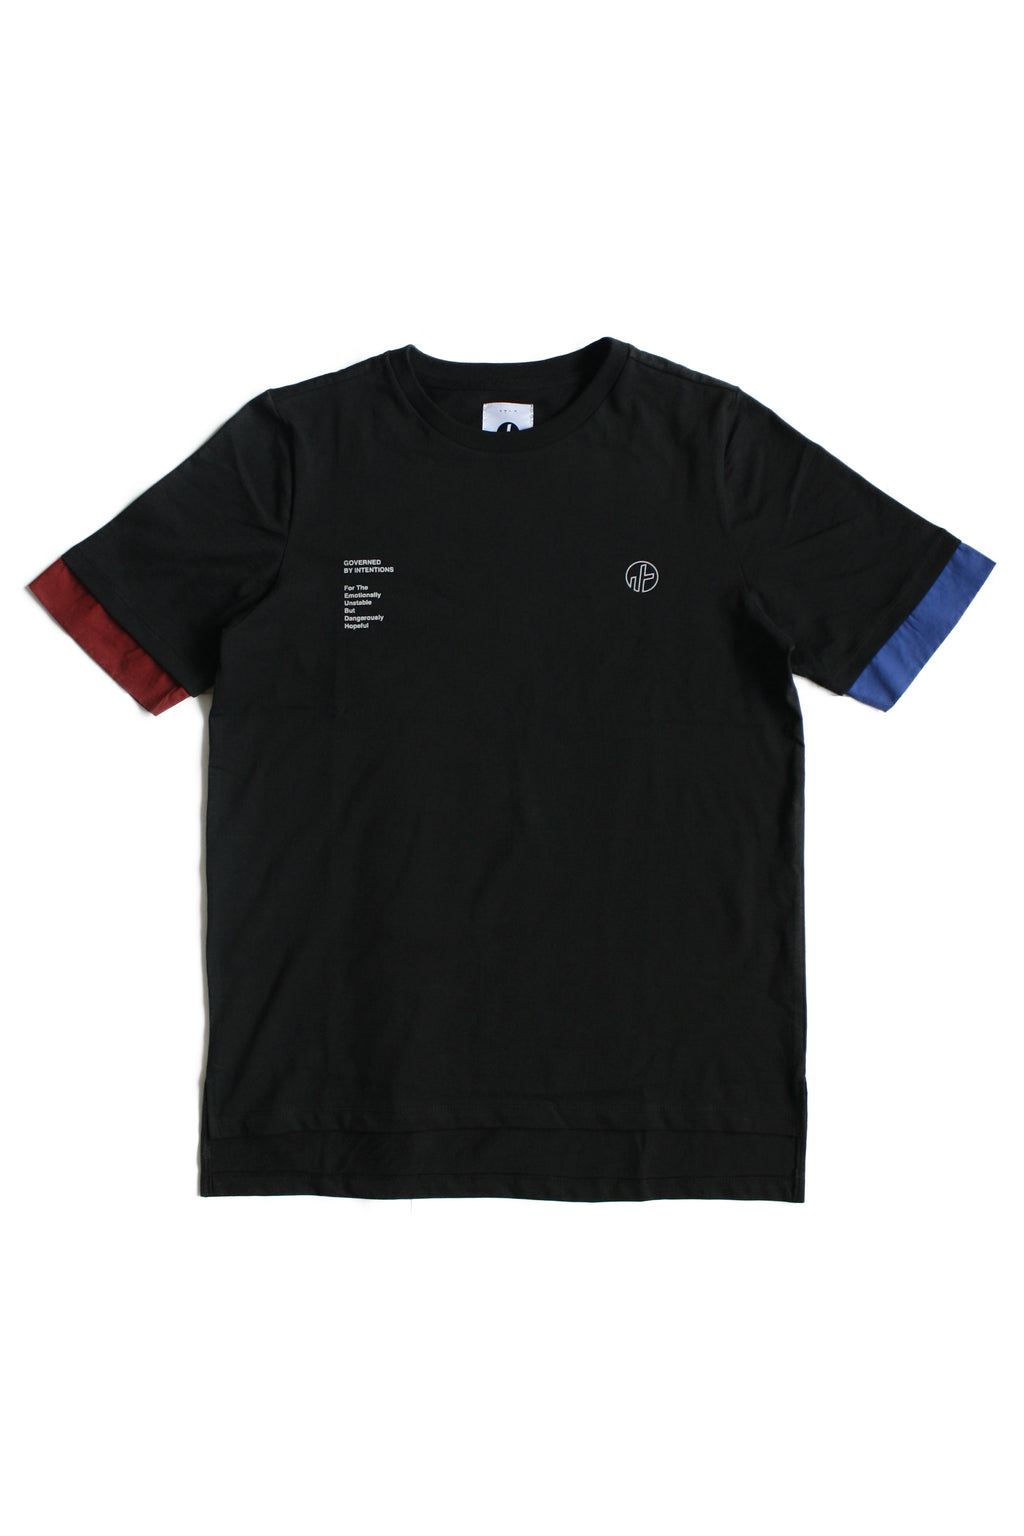 "3. ""GOVERNMENT"" Black Tee"